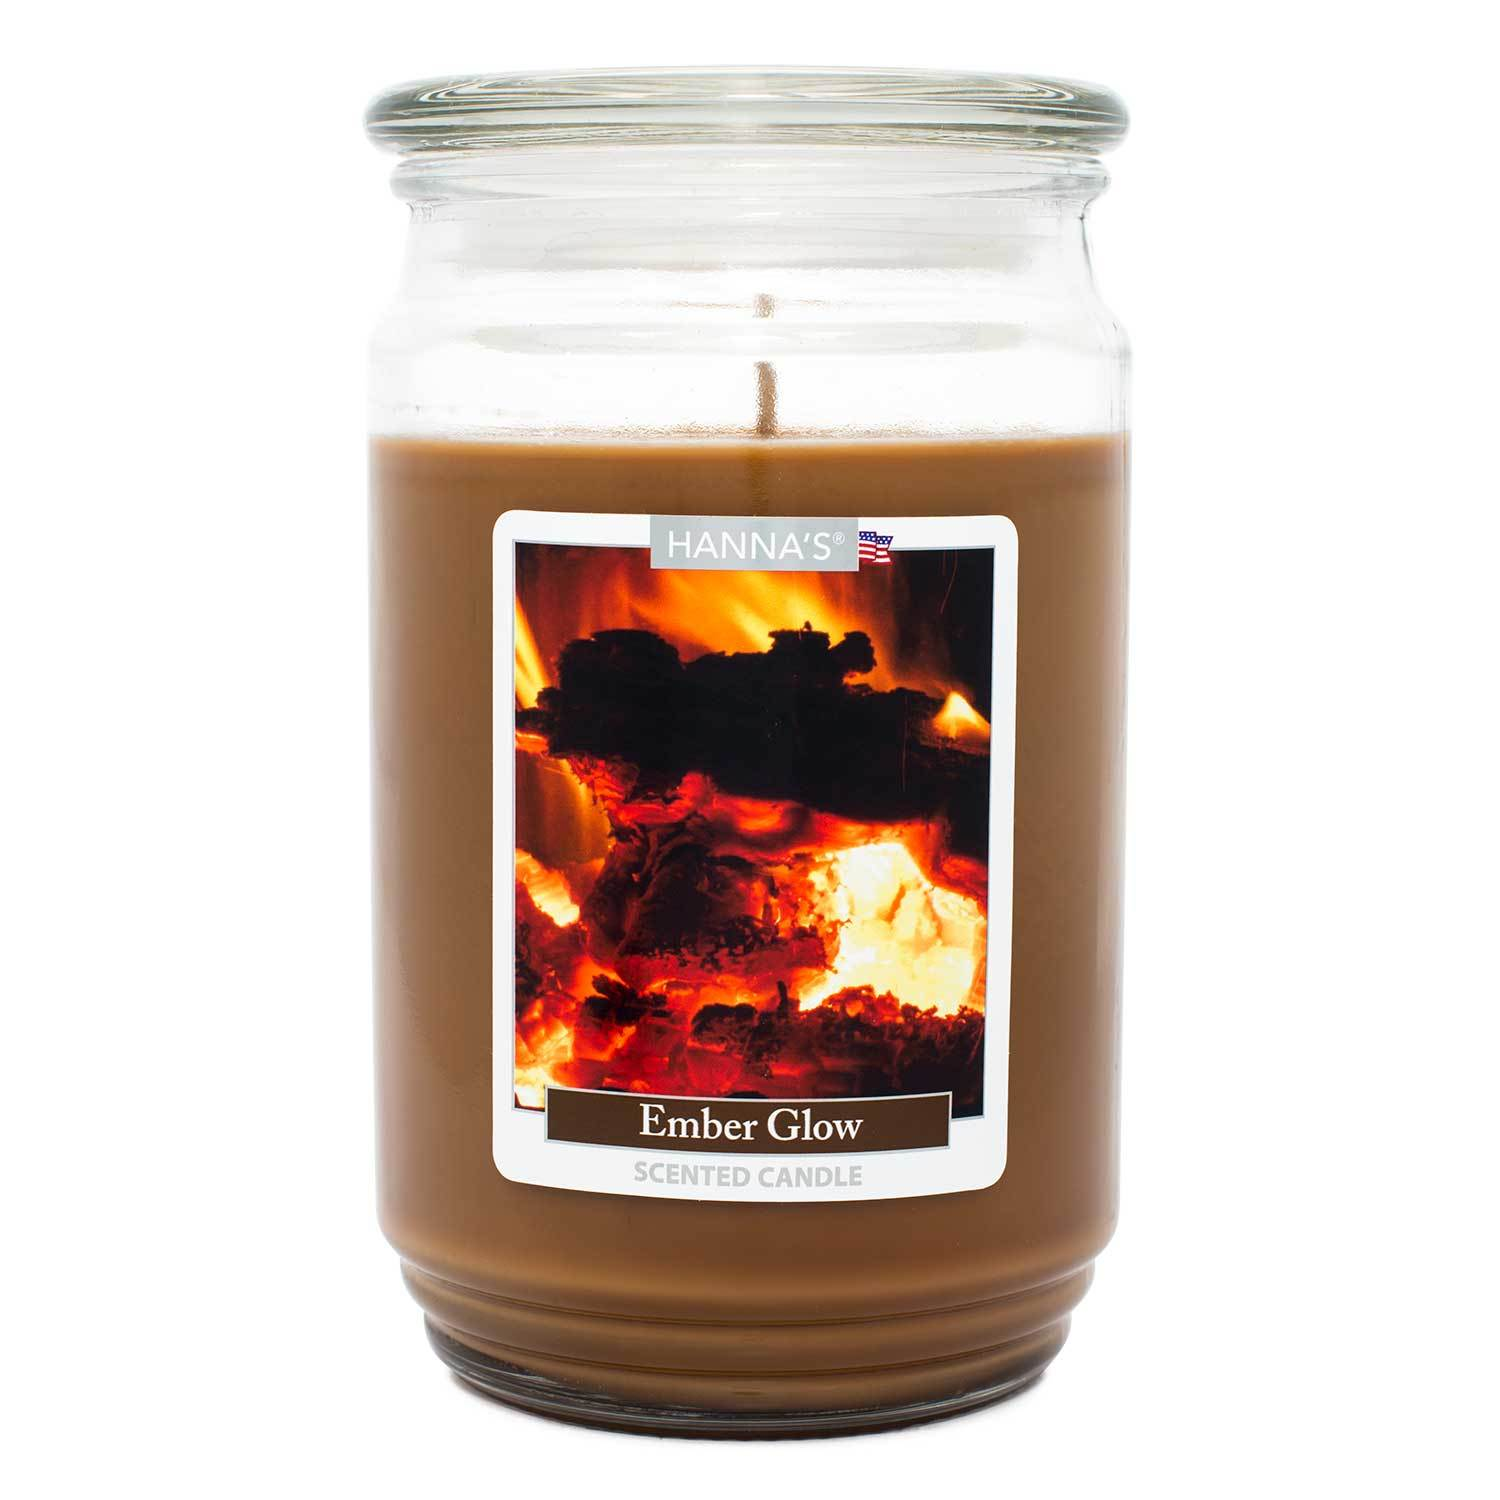 Ember Glow Scented Large Candle Candles Candlemart.com $ 12.99